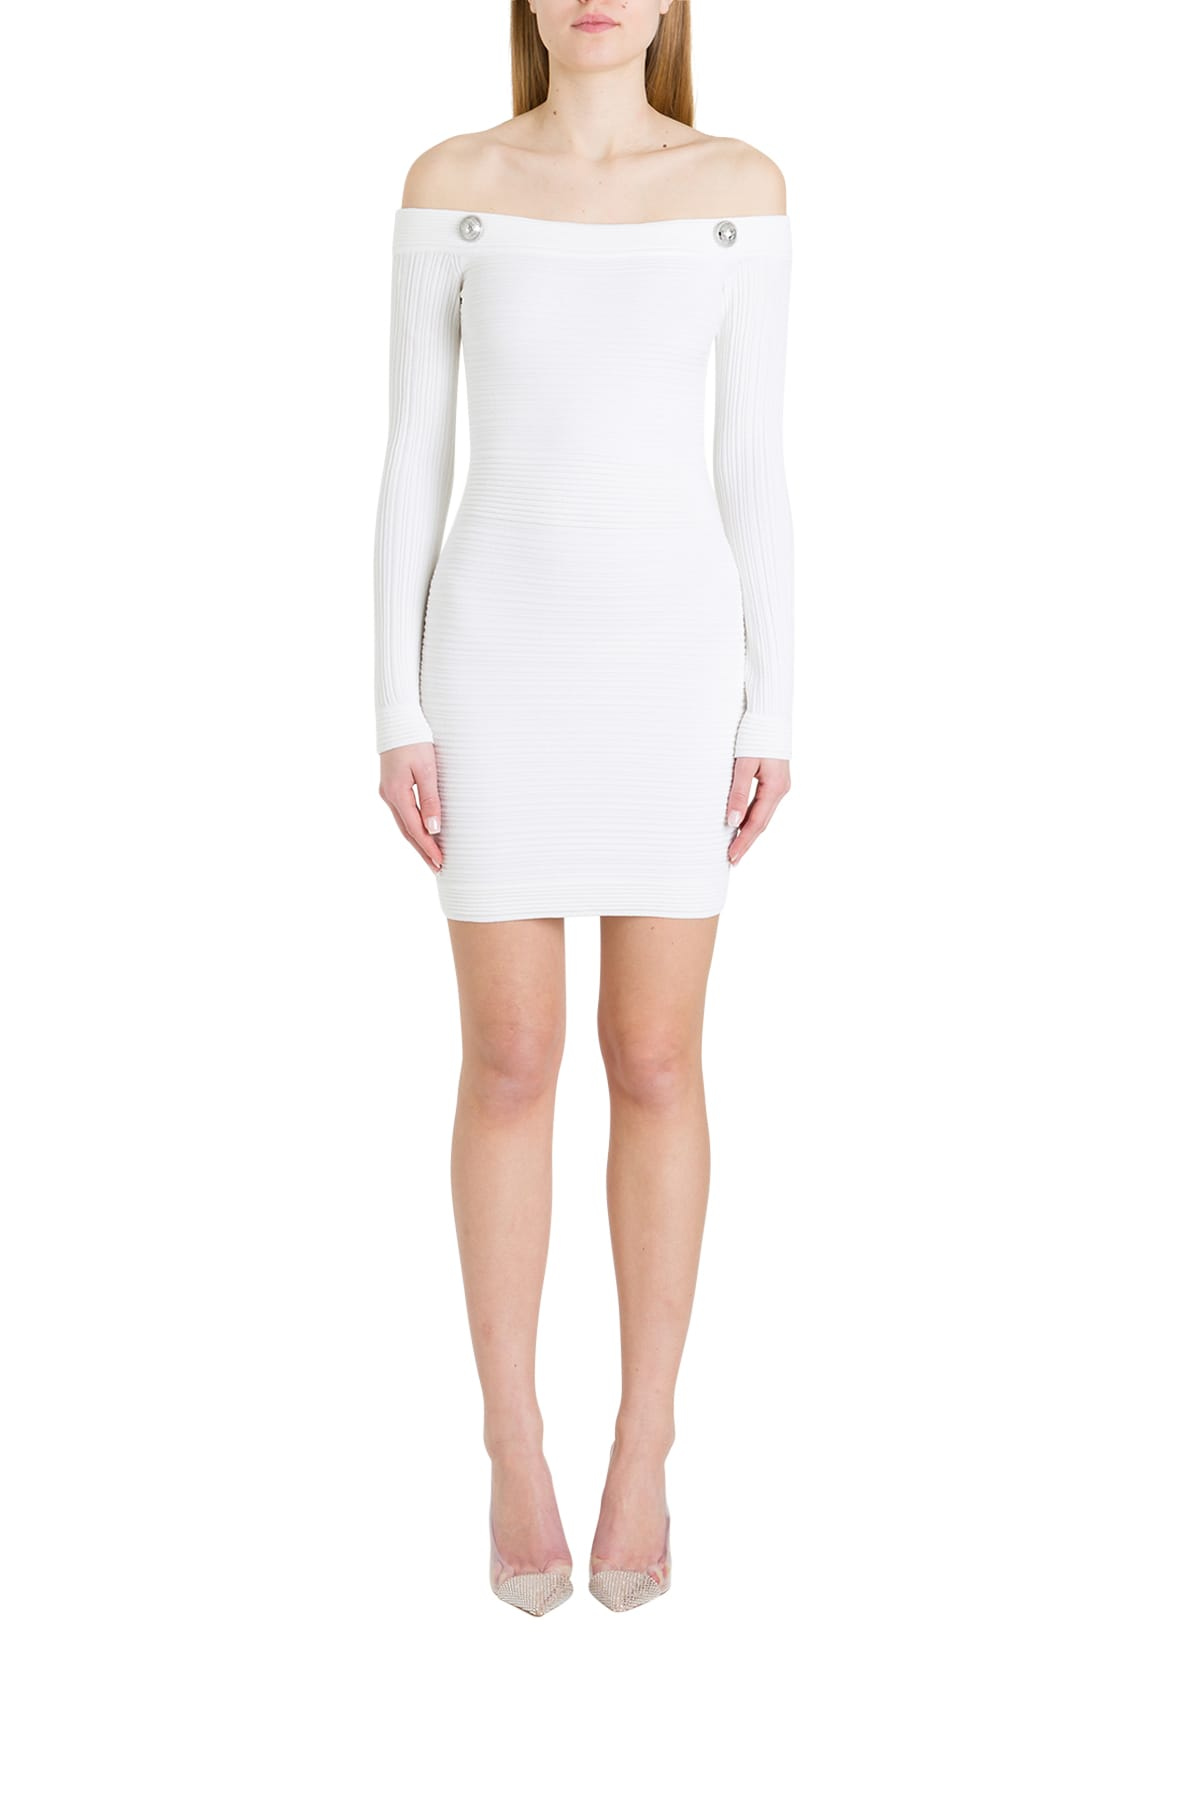 Buy Balmain Off-the-shoulder Dress In Ribbed Knit online, shop Balmain with free shipping